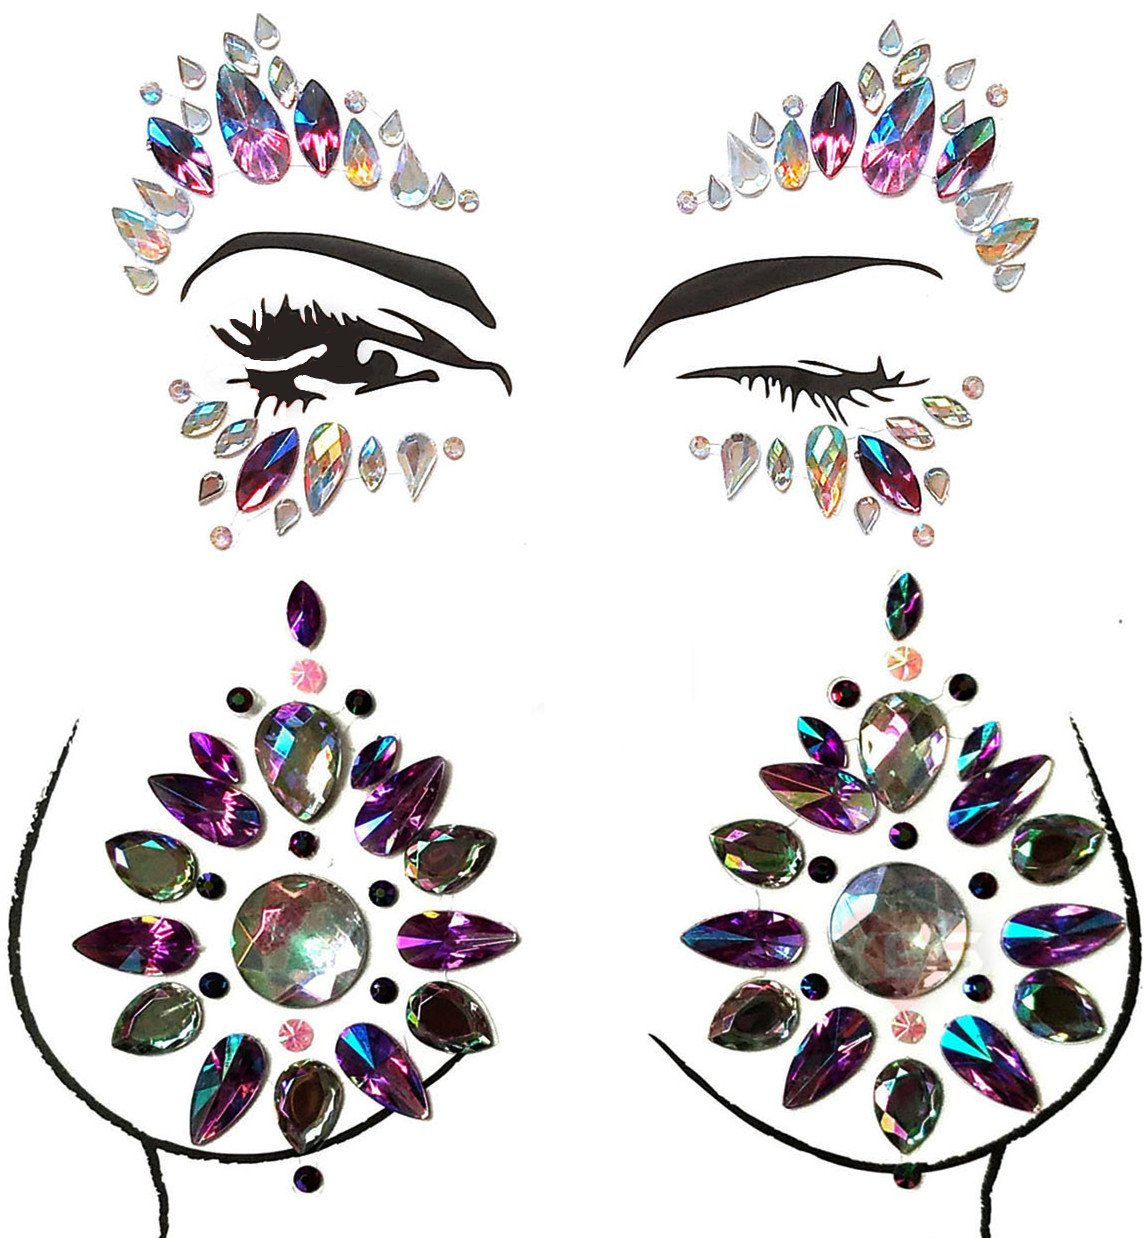 MineSign 8 Pack Face Jewels Festival Tattoo Set Face Gems Glitter Bindi Costume Makeup Rhinestone Eyes Body Rave Pasties for Party Roller (Mermaid Face Chest Kit) by MineSign (Image #7)